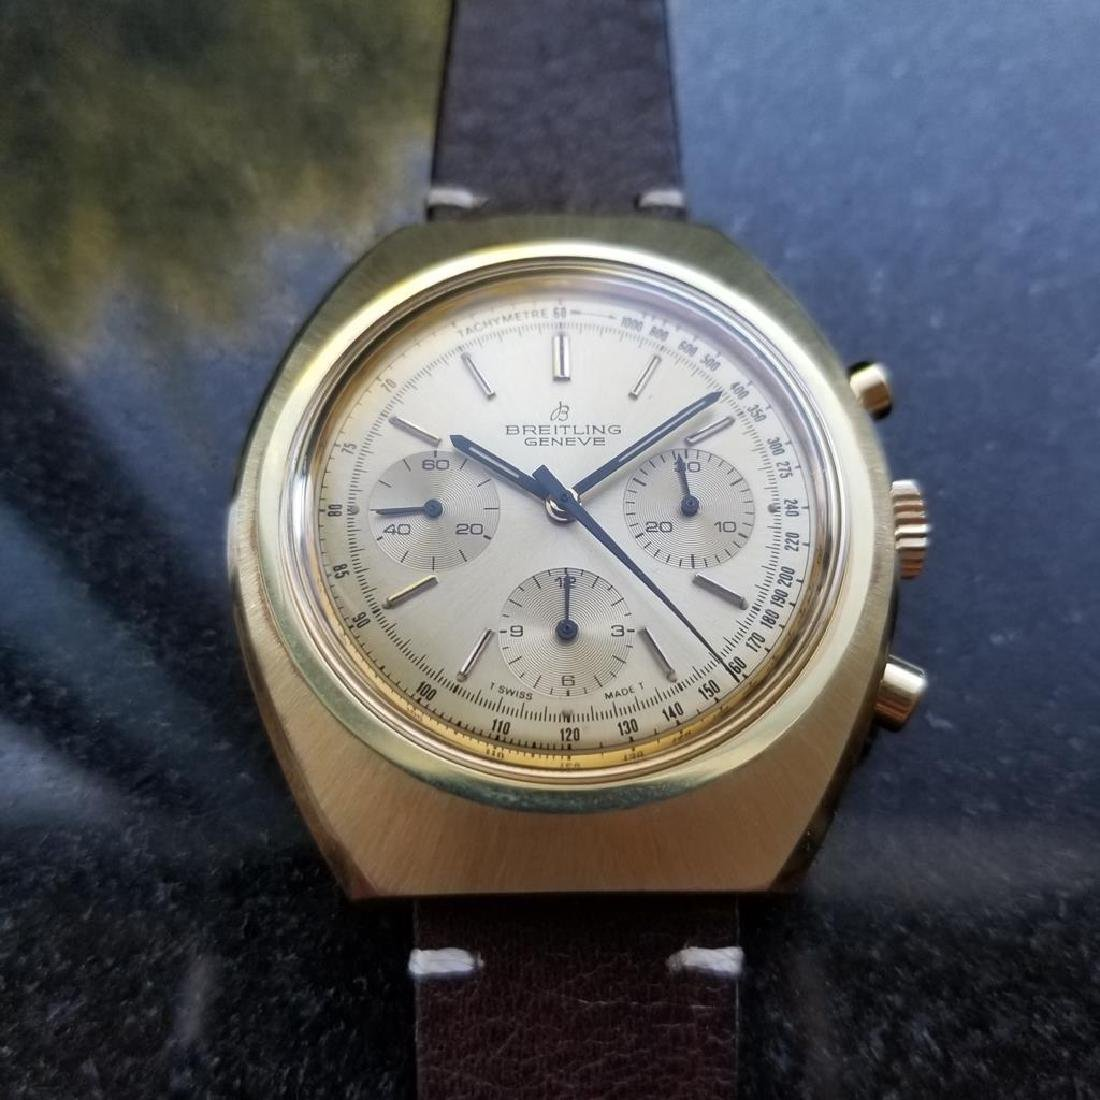 BREITLING 1451 Tricompax Manual Wind Chronograph 42mm - 4